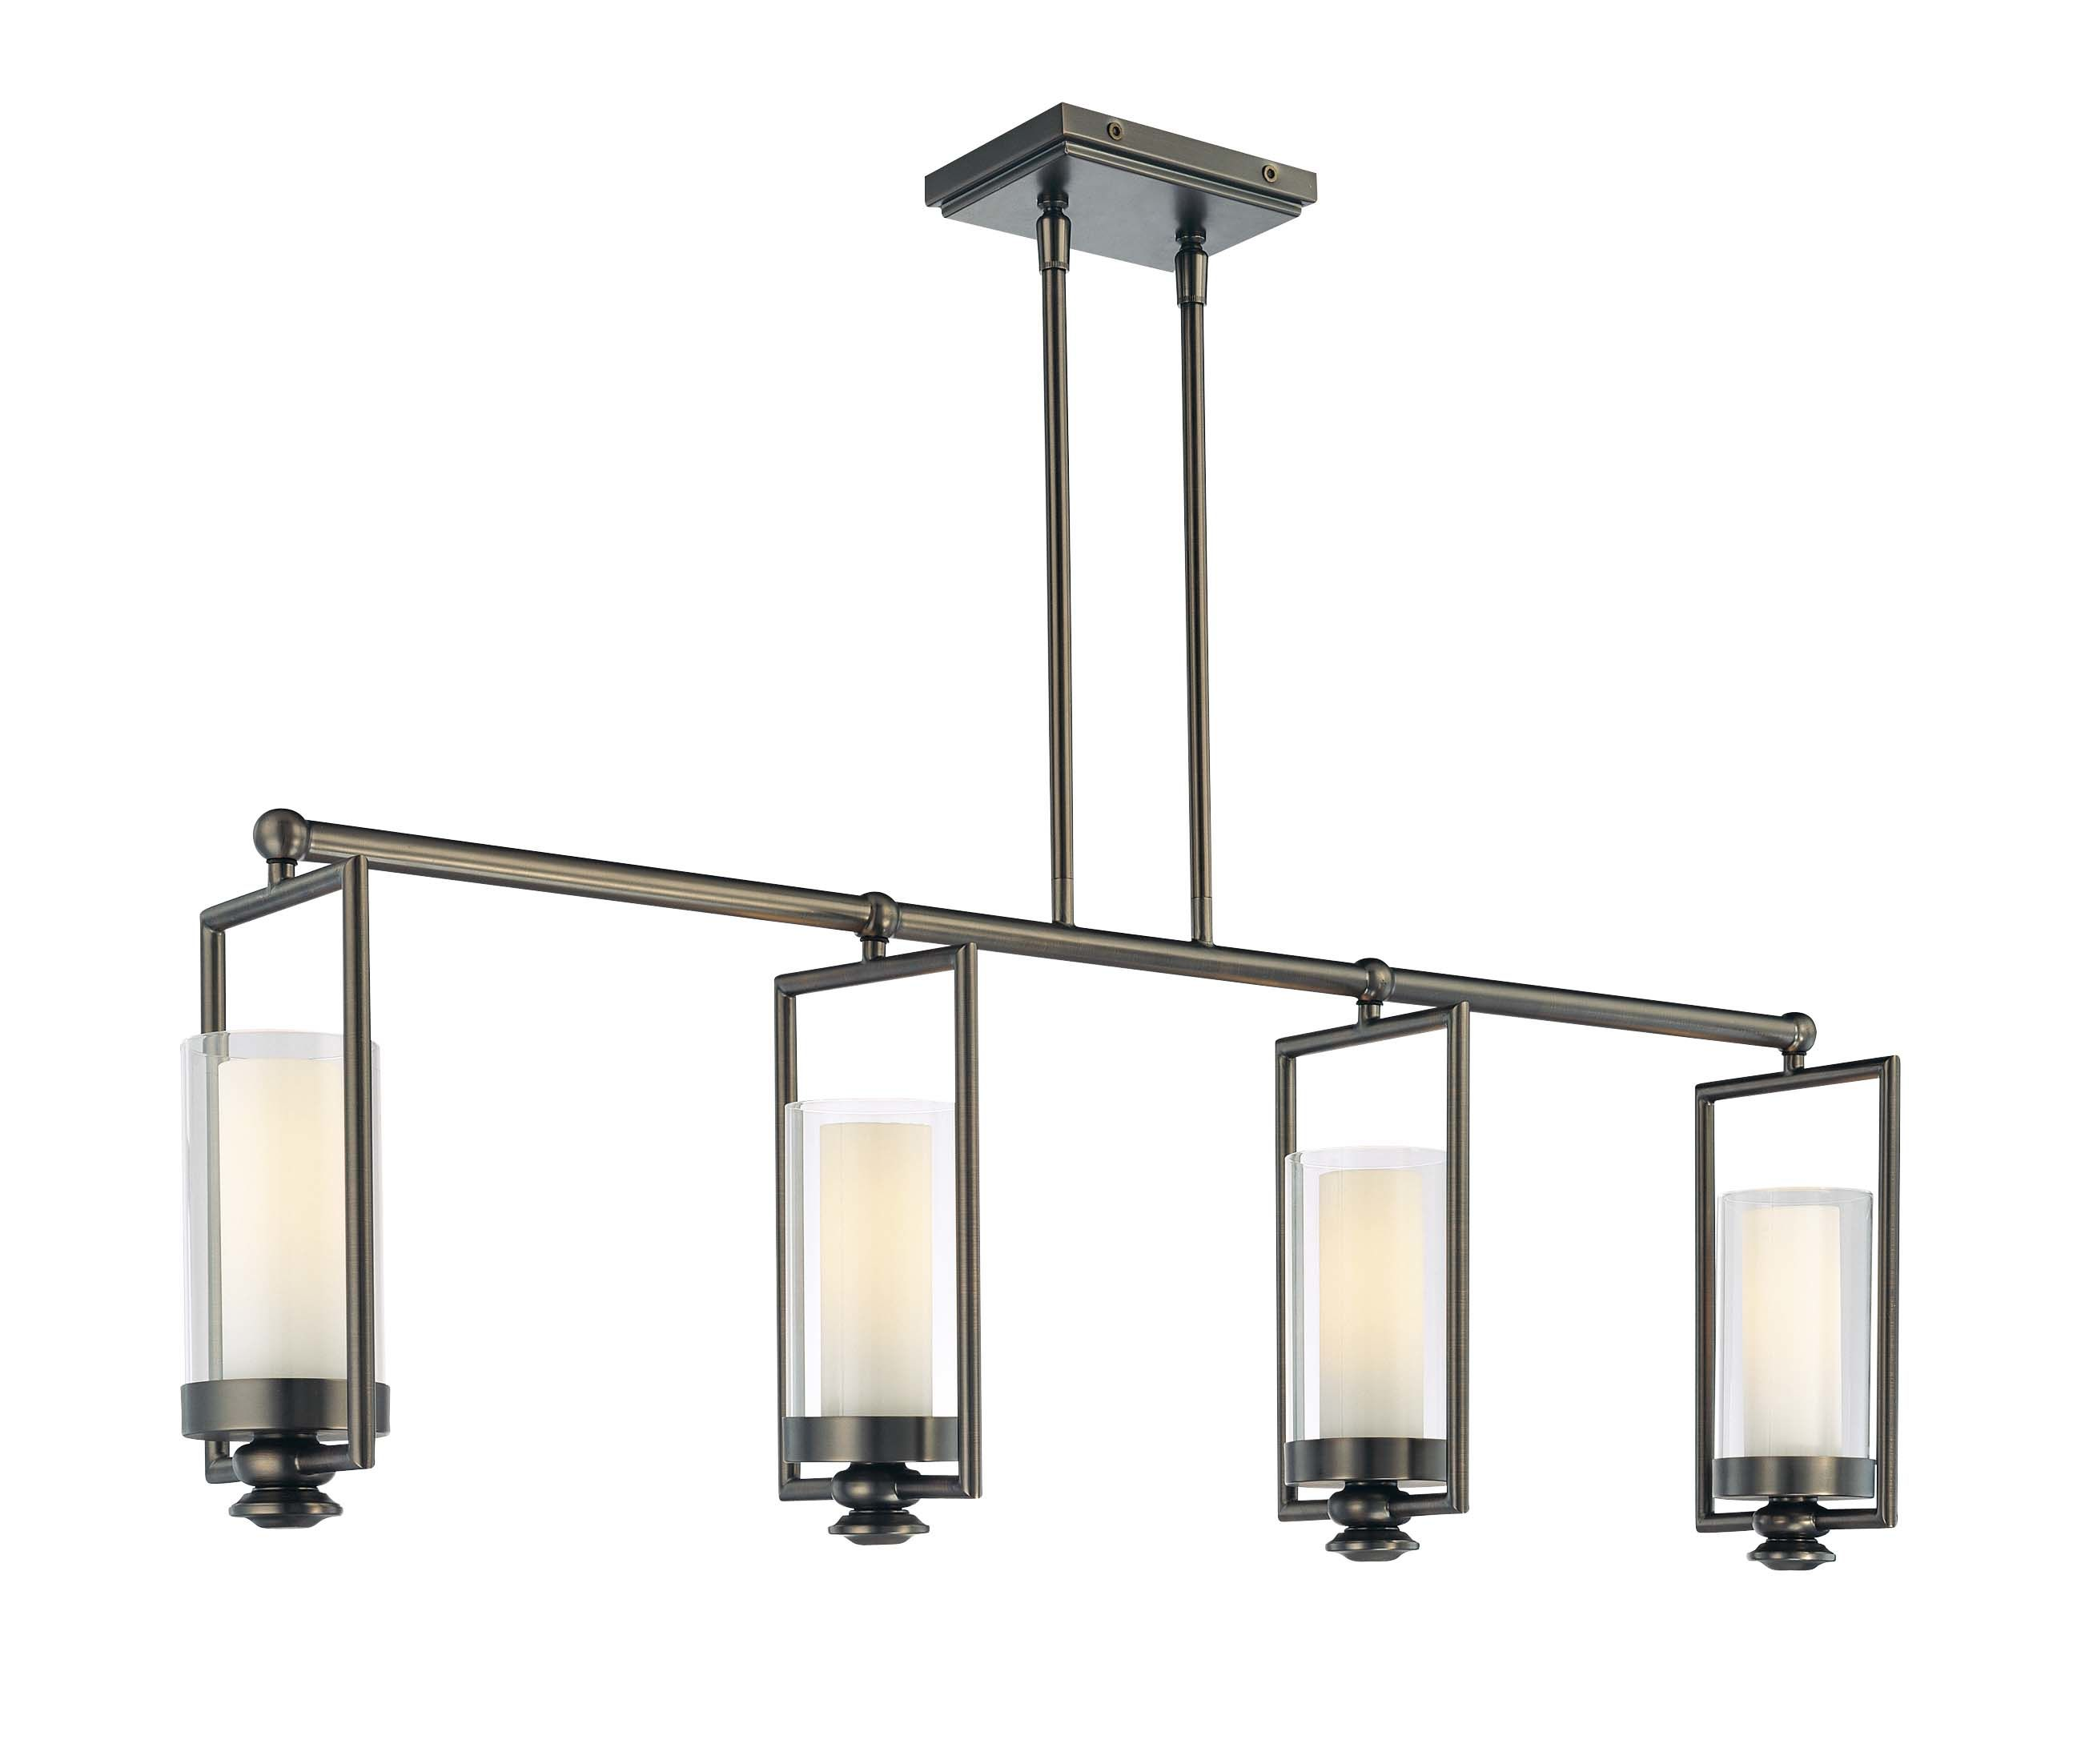 Minka lavery 4364 281 harvard ct bronze 4 light 1 tier linear chandelier from the harvard court collection faucet com